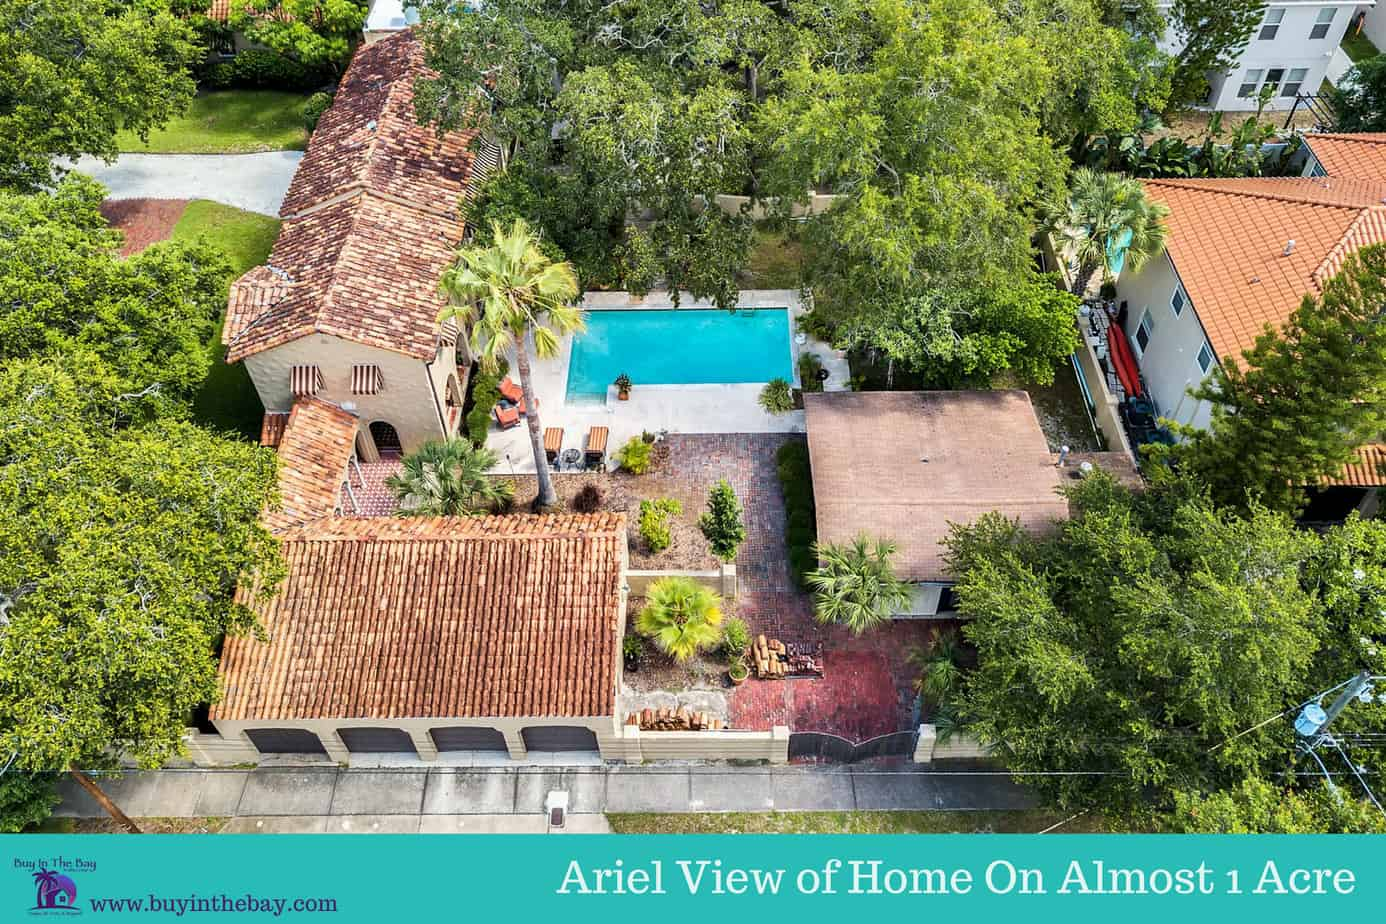 home for sale at 4024 W Bay to Bay Blvd showing roof, pool, trees, and city block. A perfect Example of a Historic Homes in Florida and a Tampa Bay Luxury Homes For sale.